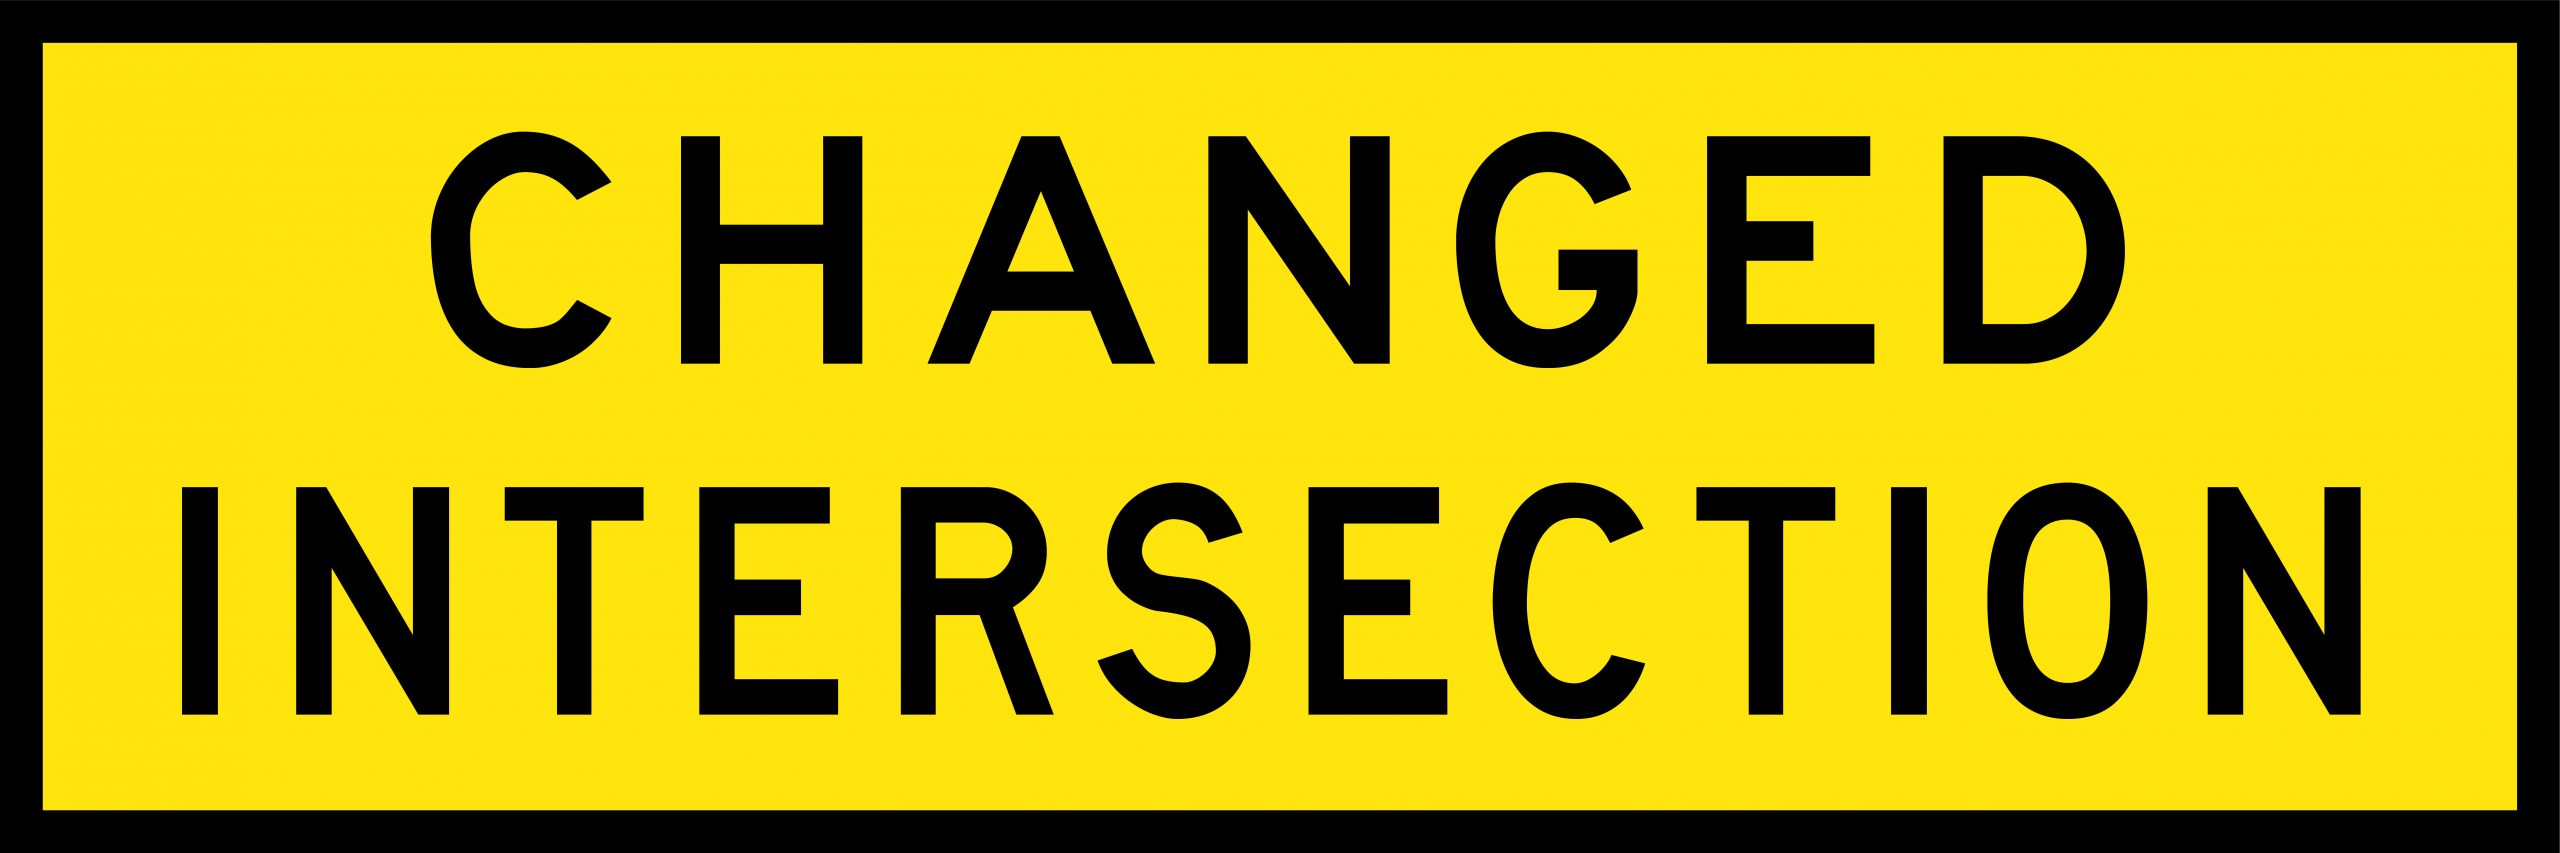 Changed Intersection Signage